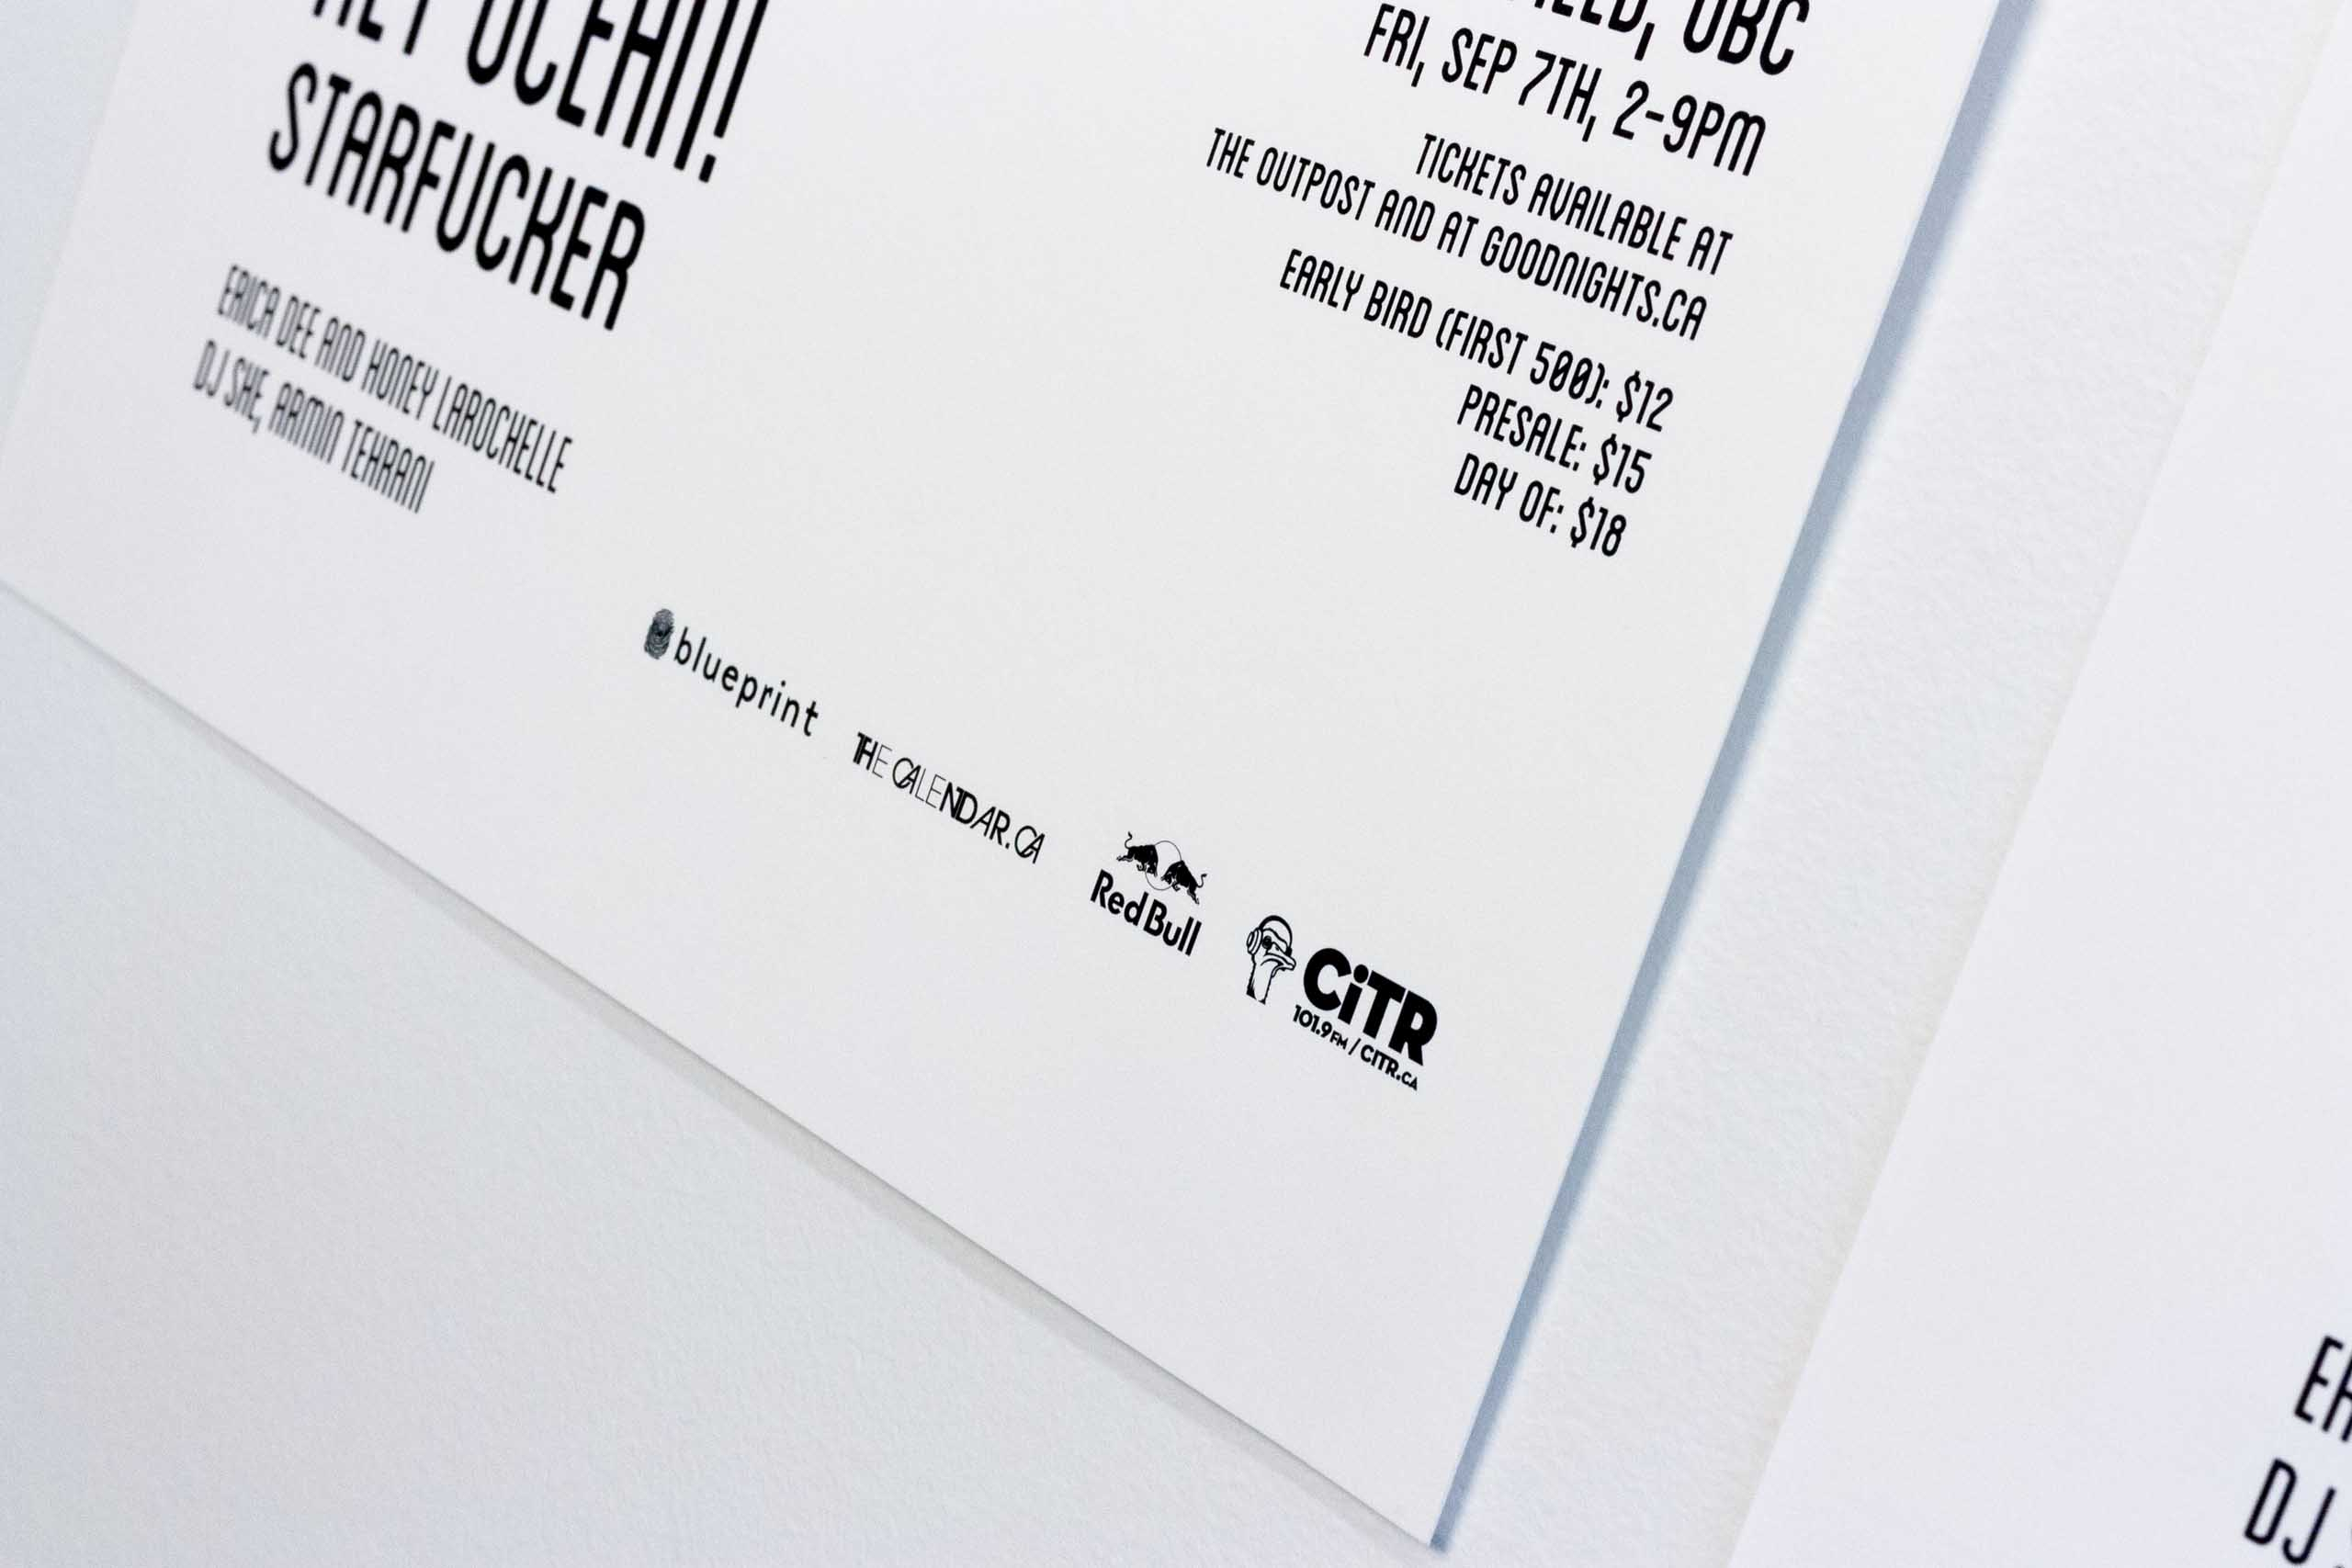 Details of poster information set in Blanch Condensed typeface, including event sponsors — by Yagnyuk.